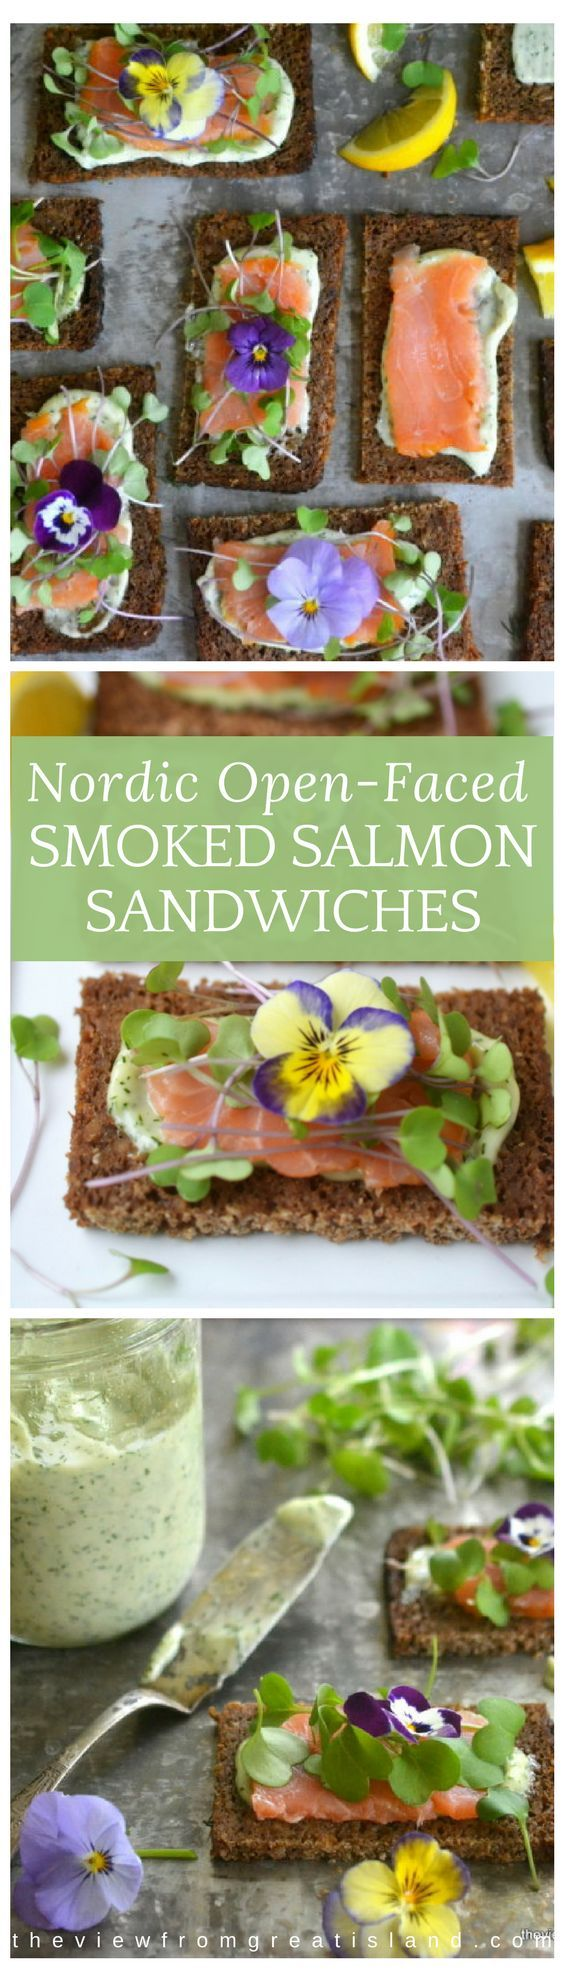 Nordic Open Faced Smoked Salmon Sandwiches are exquisitely delicate and healthy ~ this is clean eating that that also happens to be insanely delicious! #salmon #dill #nordicrecipes #smokedsalmon #brunch #appetizer #healthy #colorfulfood #edibleflowers #microgreens #toasts #homemademayo #scandinavianfood #ryebread #seafood